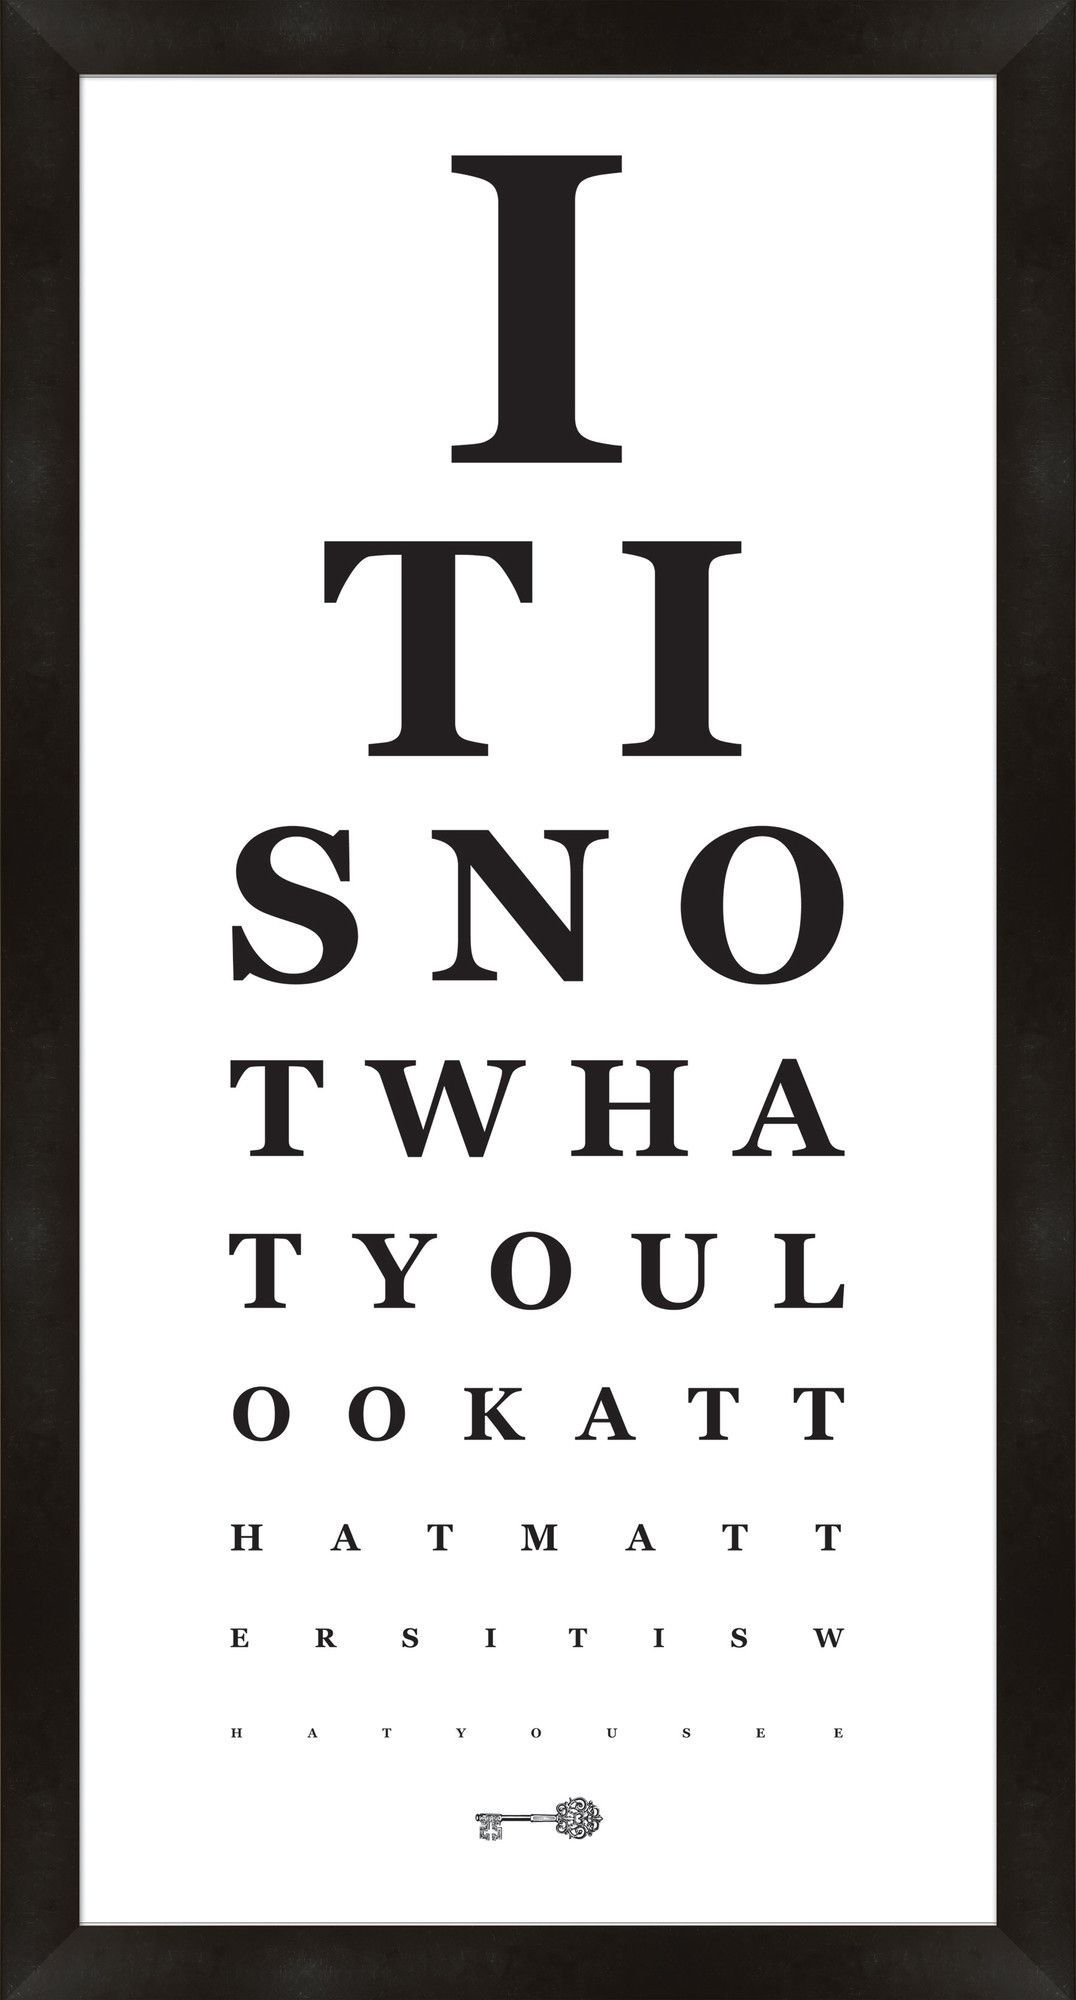 Eye chart framed textual art in black and white creativity at its eye chart framed textual art in black and white geenschuldenfo Gallery